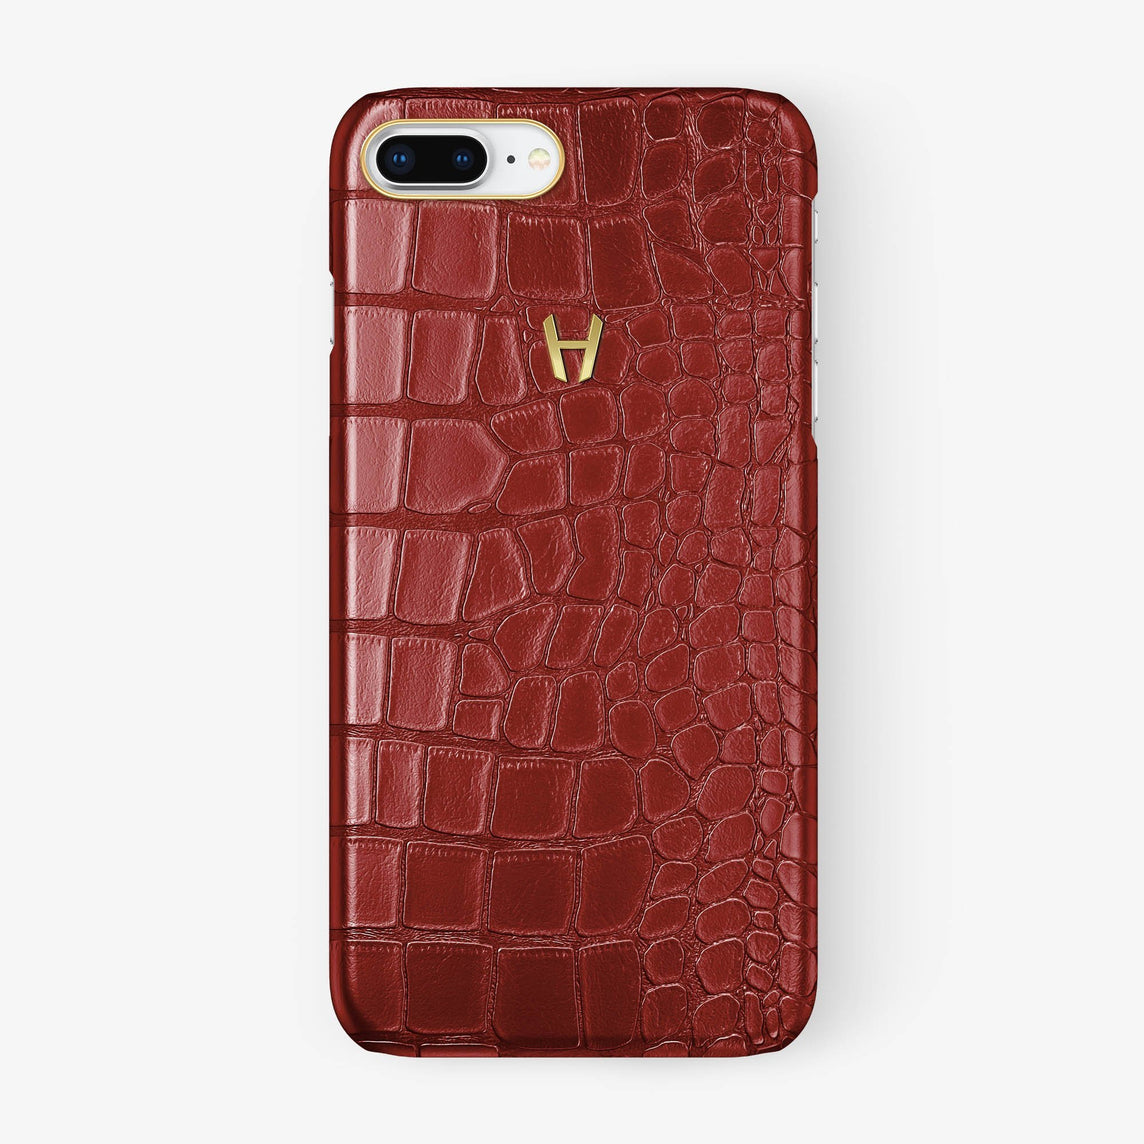 Alligator Case iPhone 7/8 Plus | Red - Yellow Gold - Hadoro